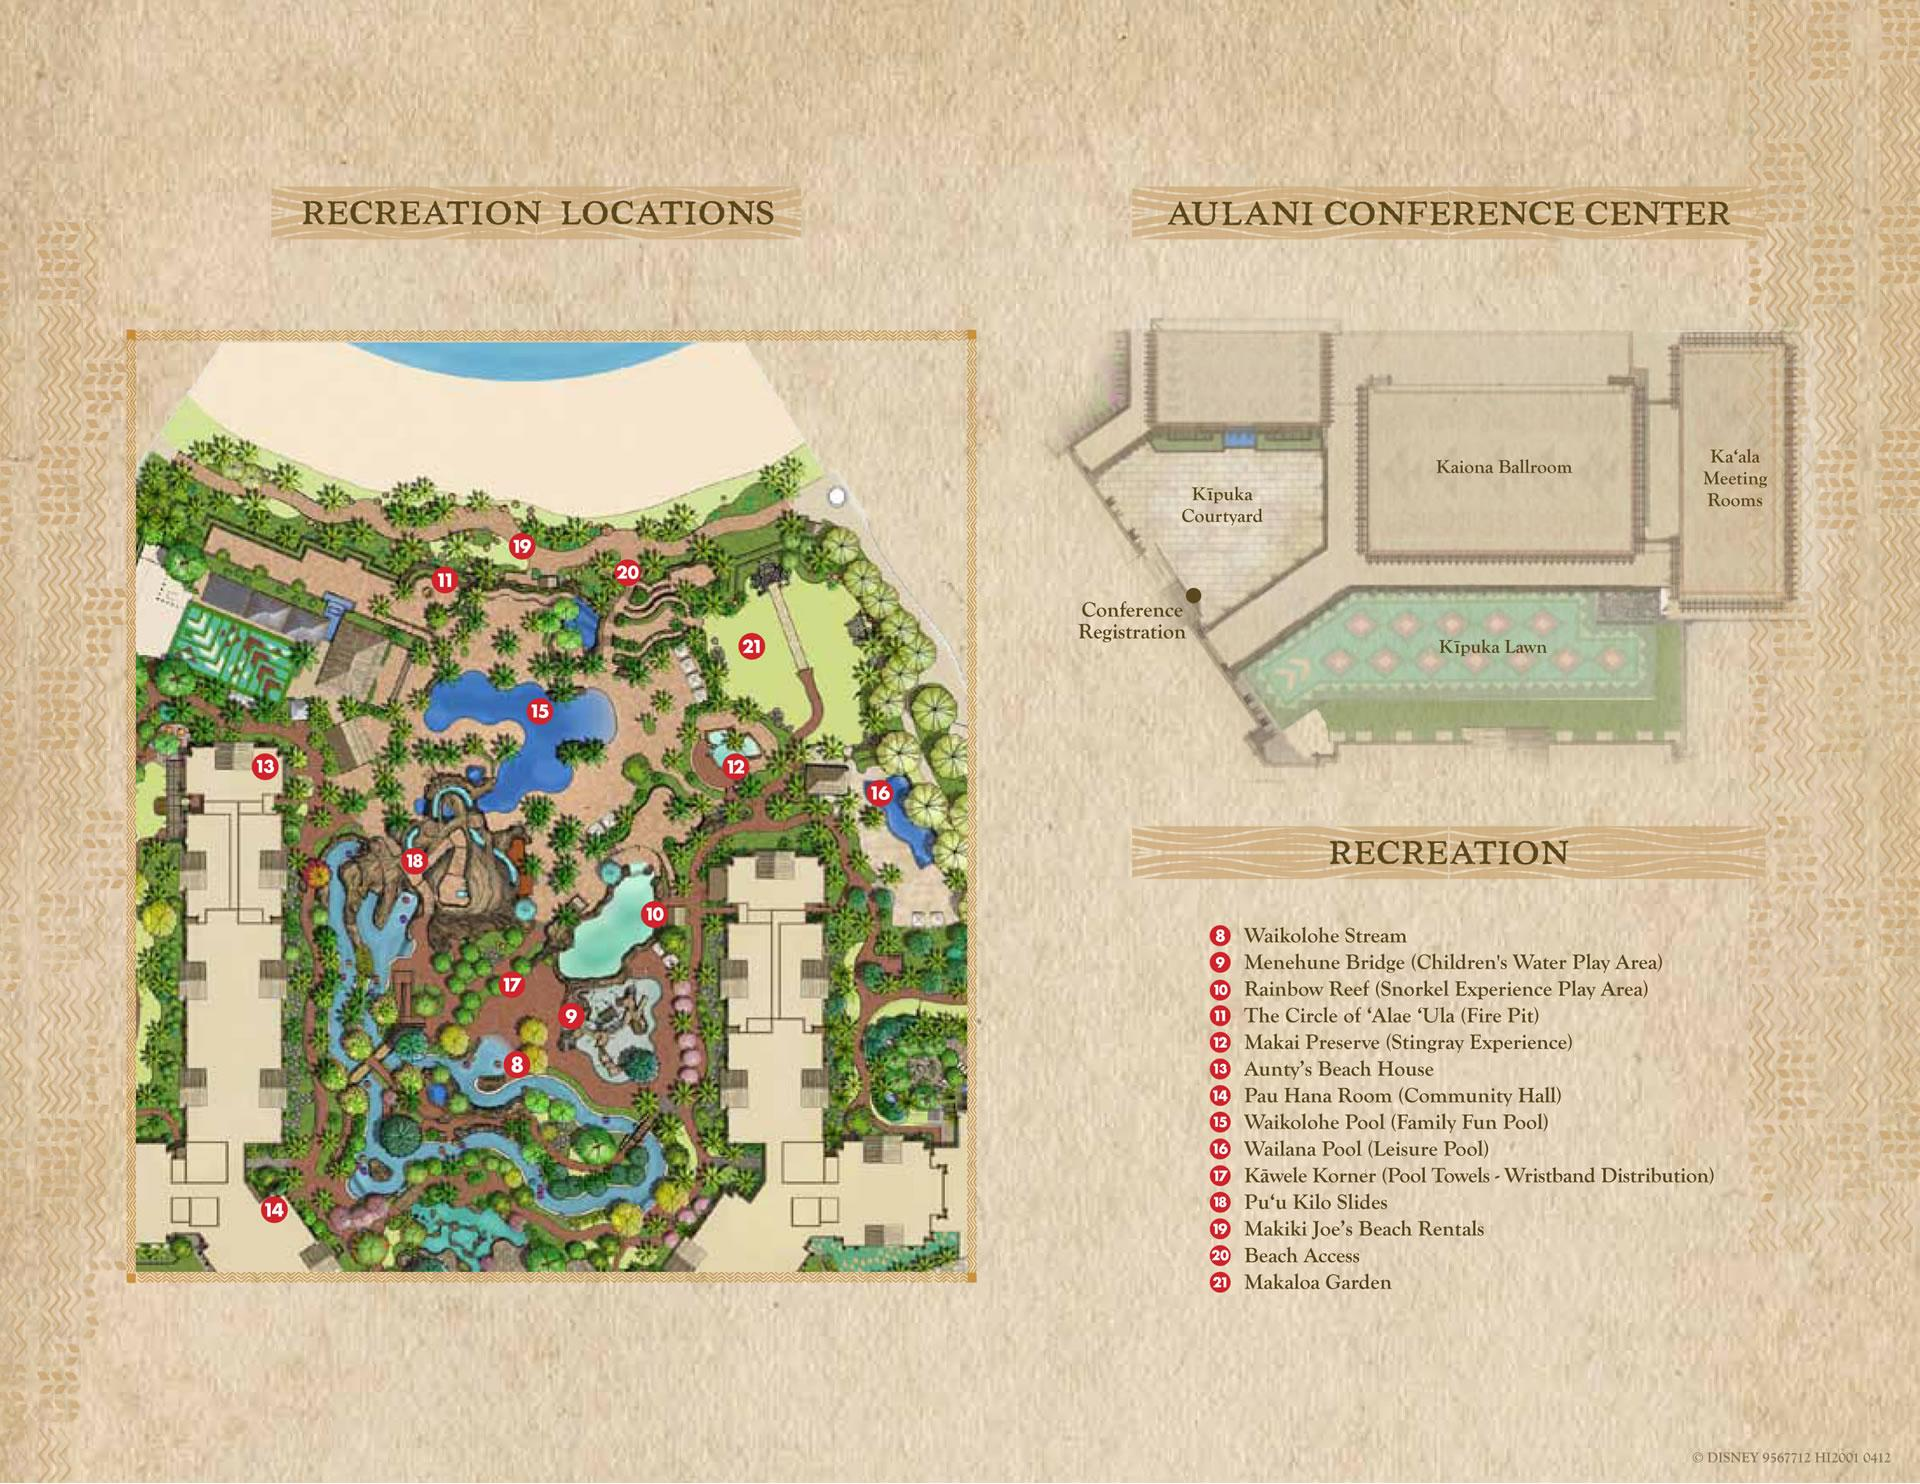 aulani resort map-2